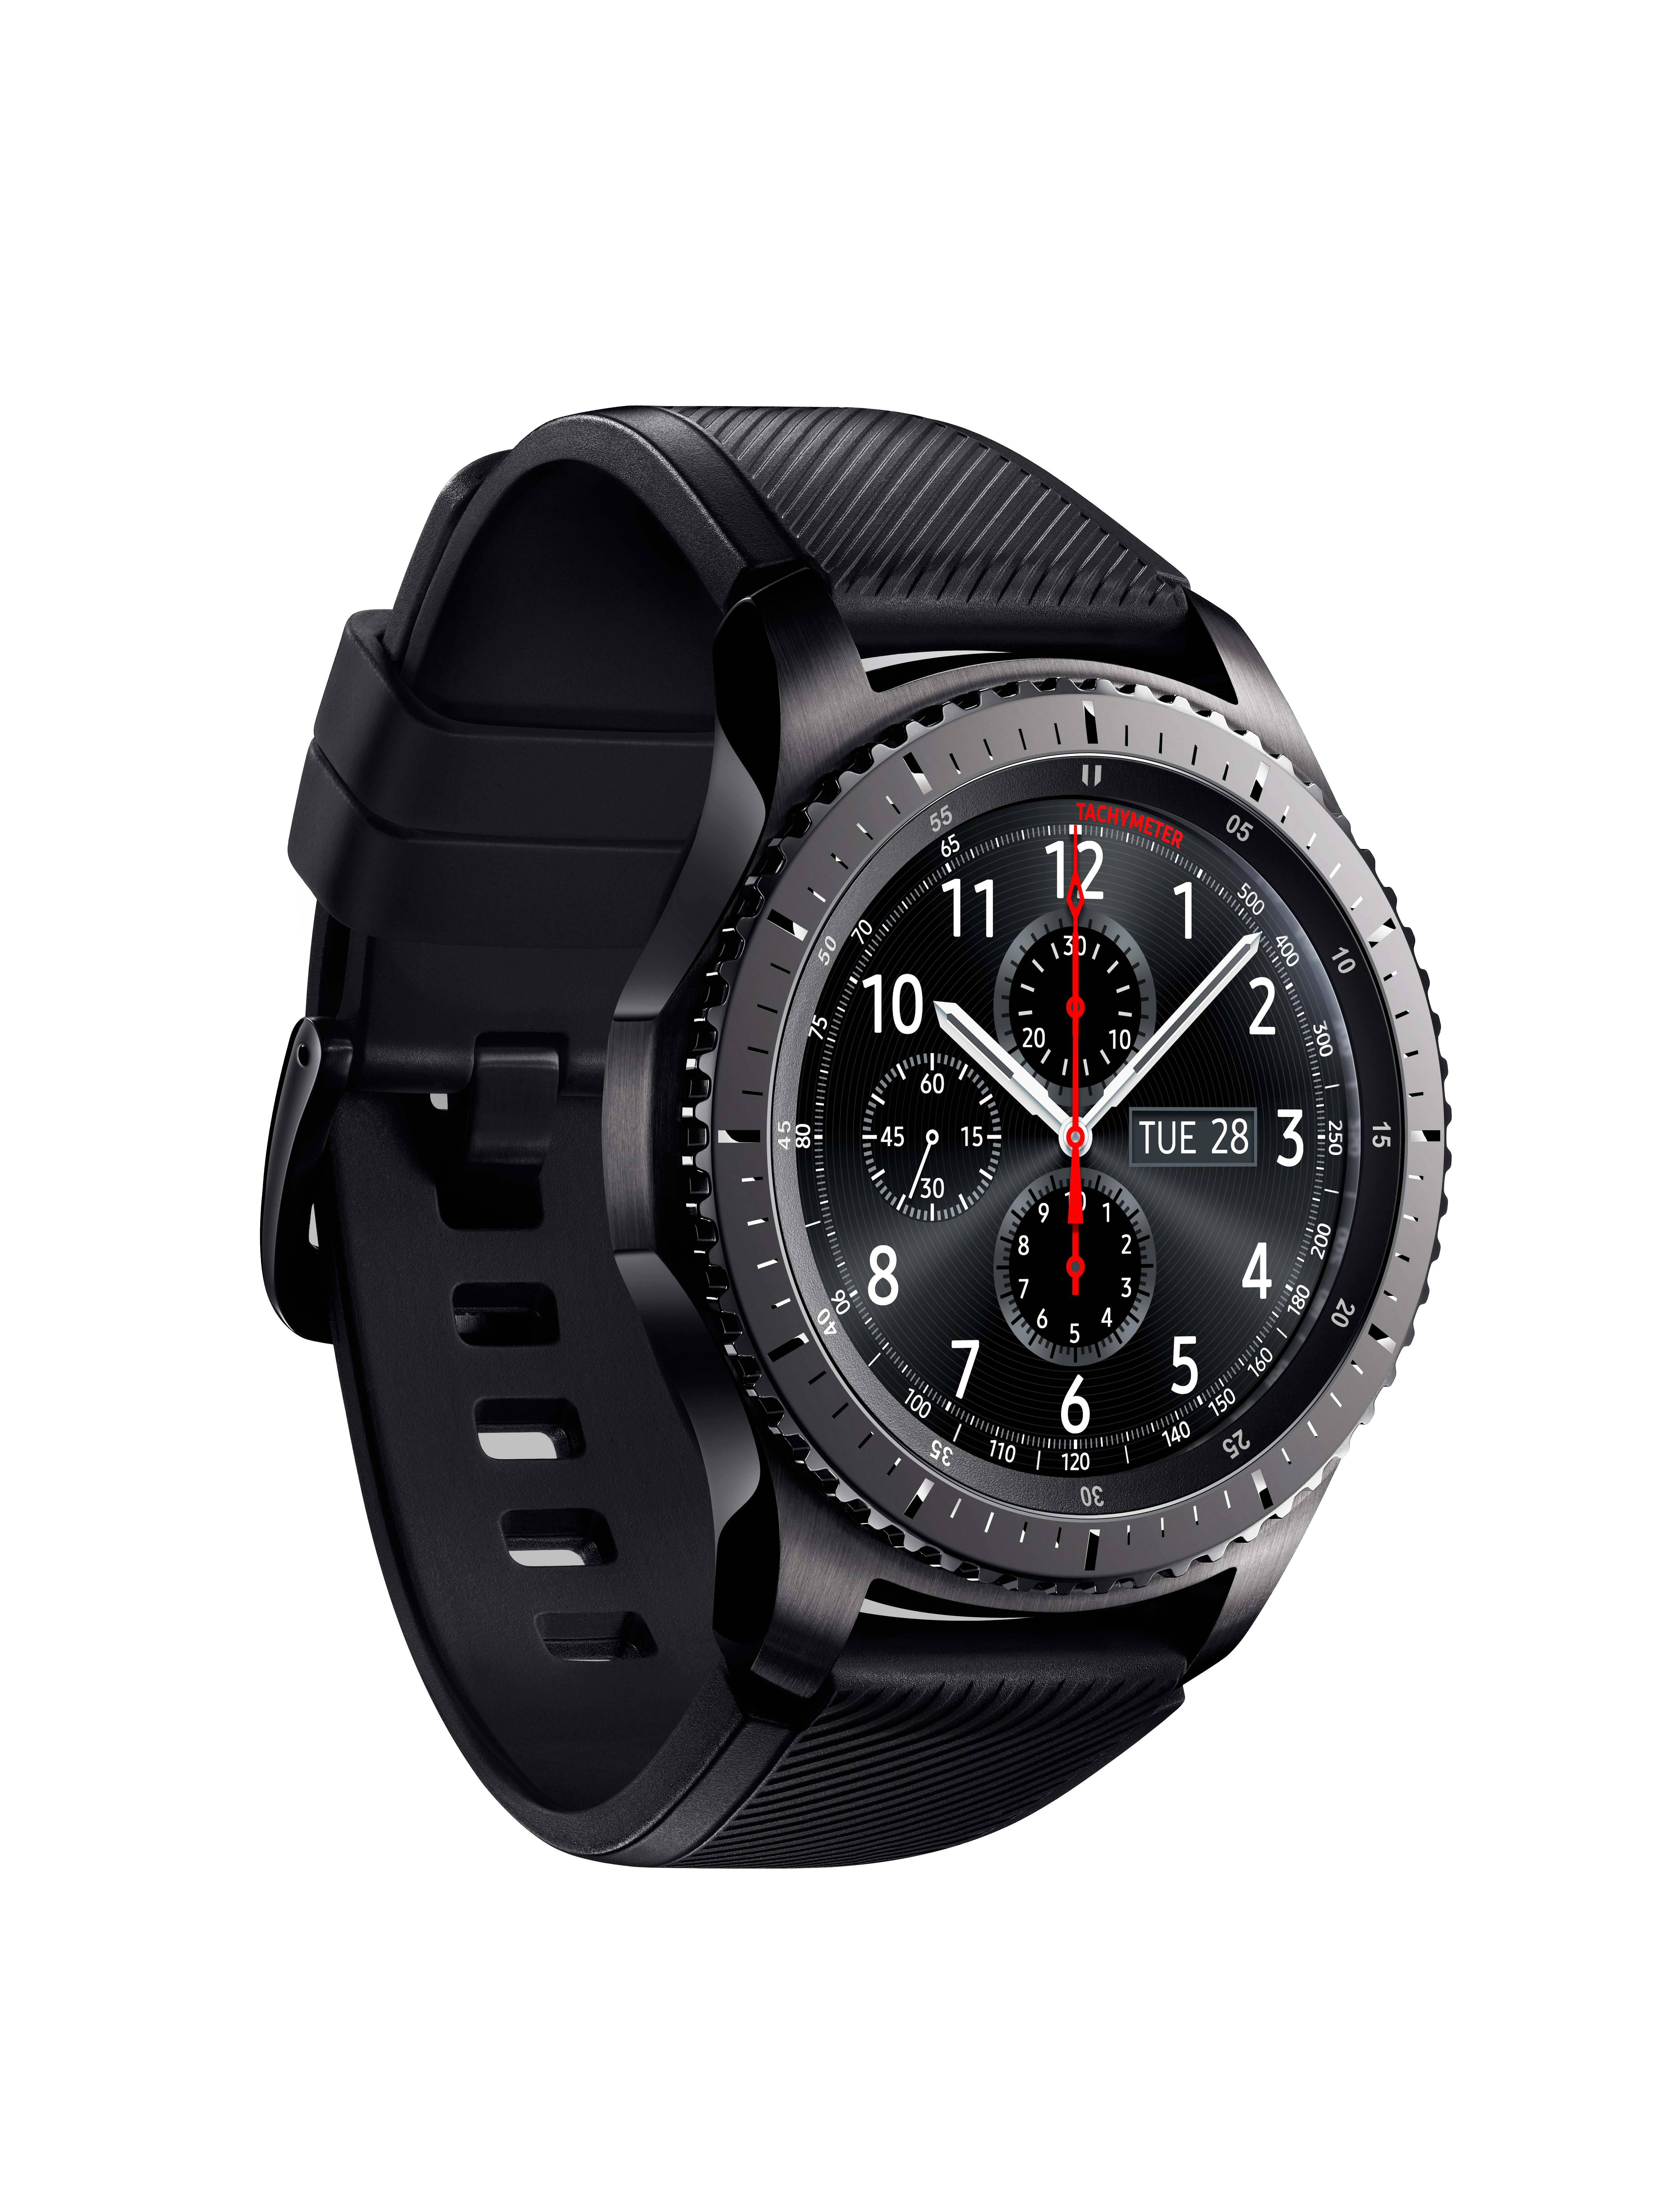 Gear S3 Classic Vs Gear S3 Frontier: What's the Difference ...